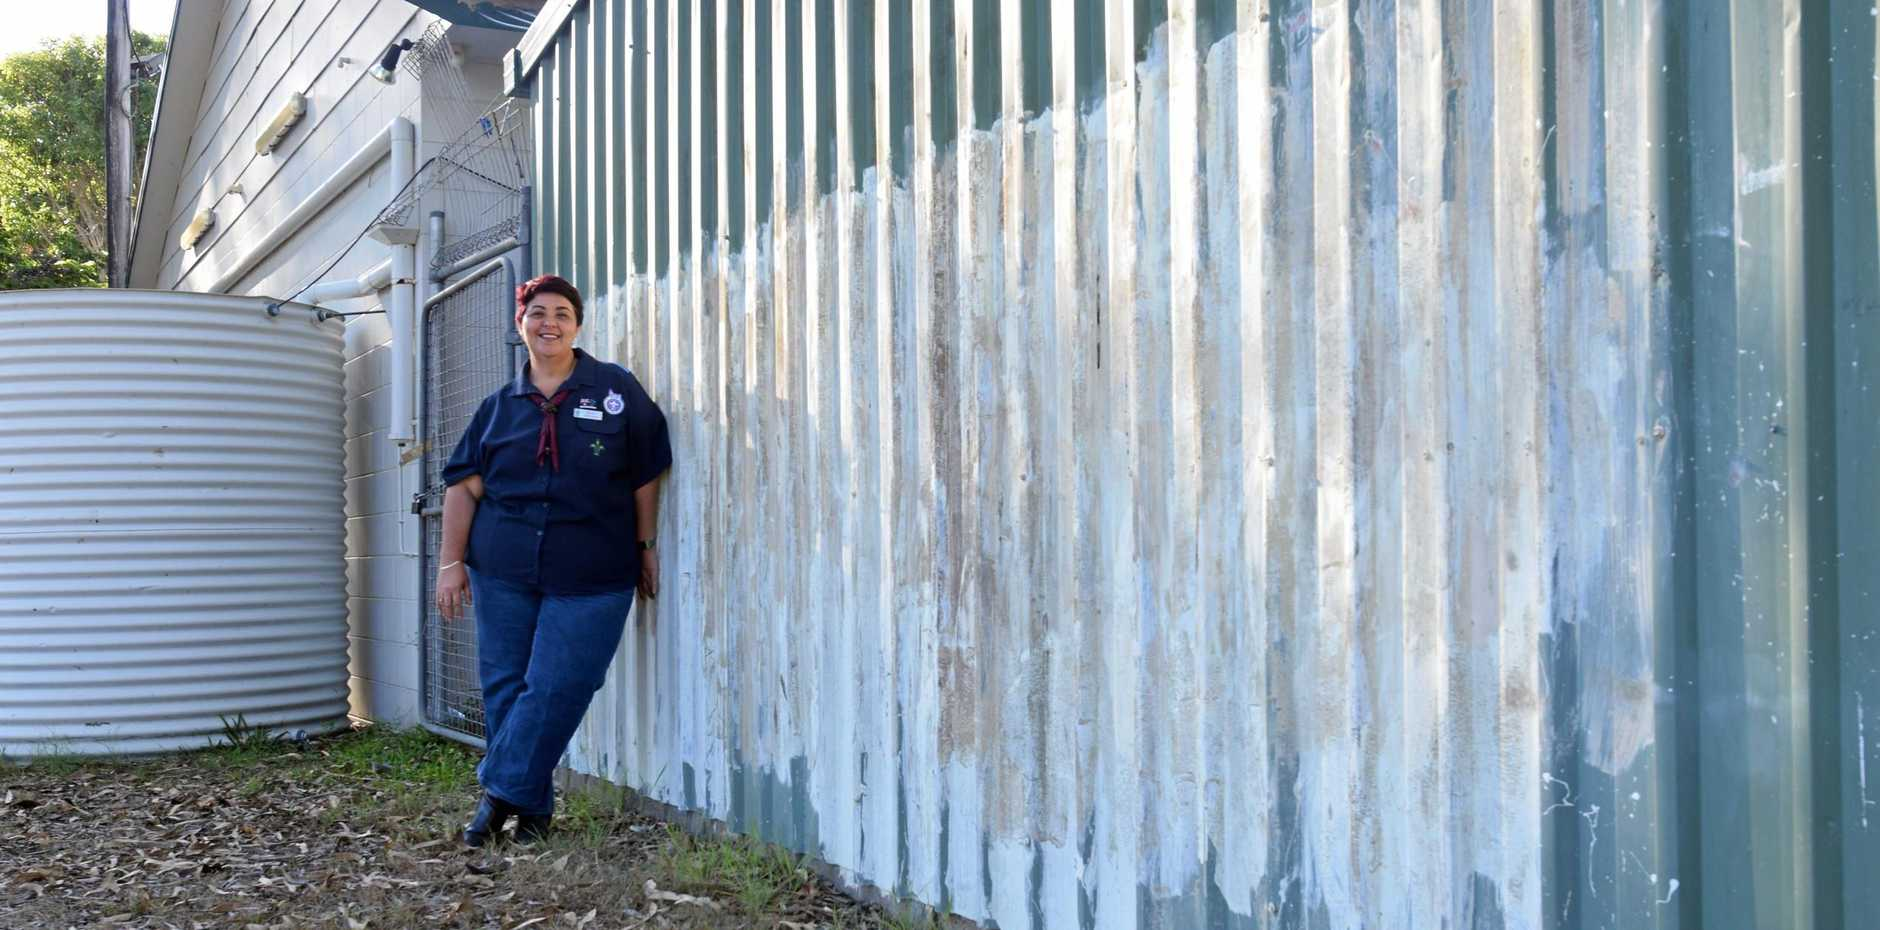 Banksia Scout Group leader in charge Katrina Hoare is frustrated by the number of attacks on the group's property.